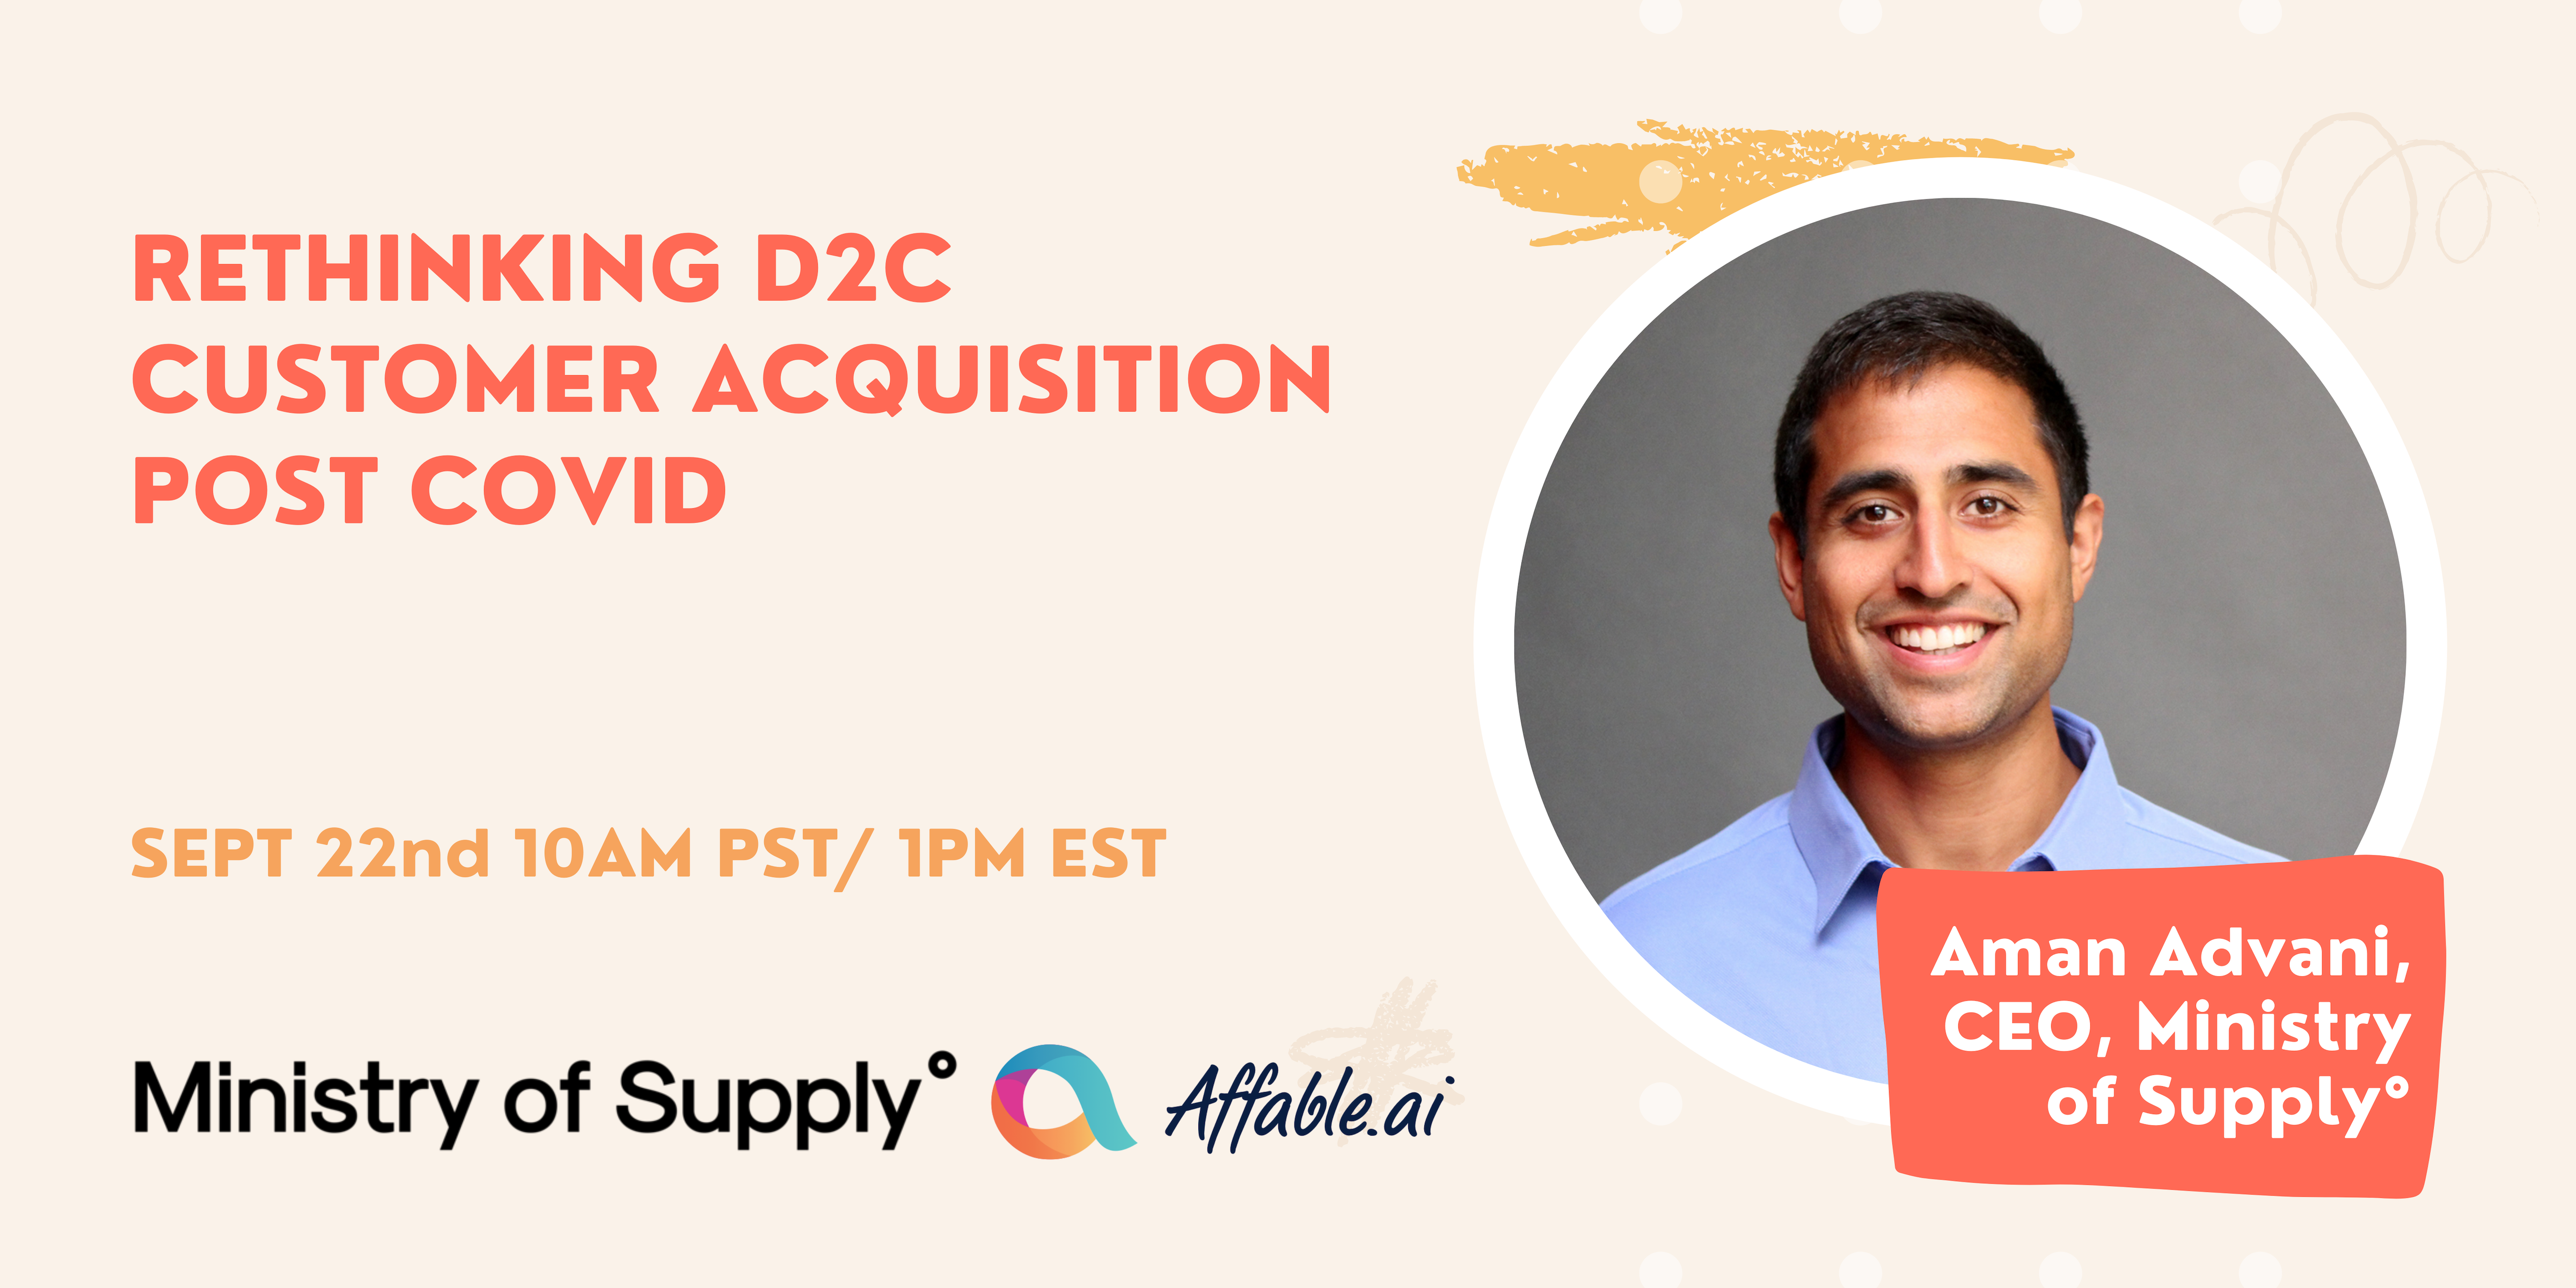 🗣 Rethinking D2C Customer Acquisition Post COVID: Conversation with Aman Advani from Ministry of Supply